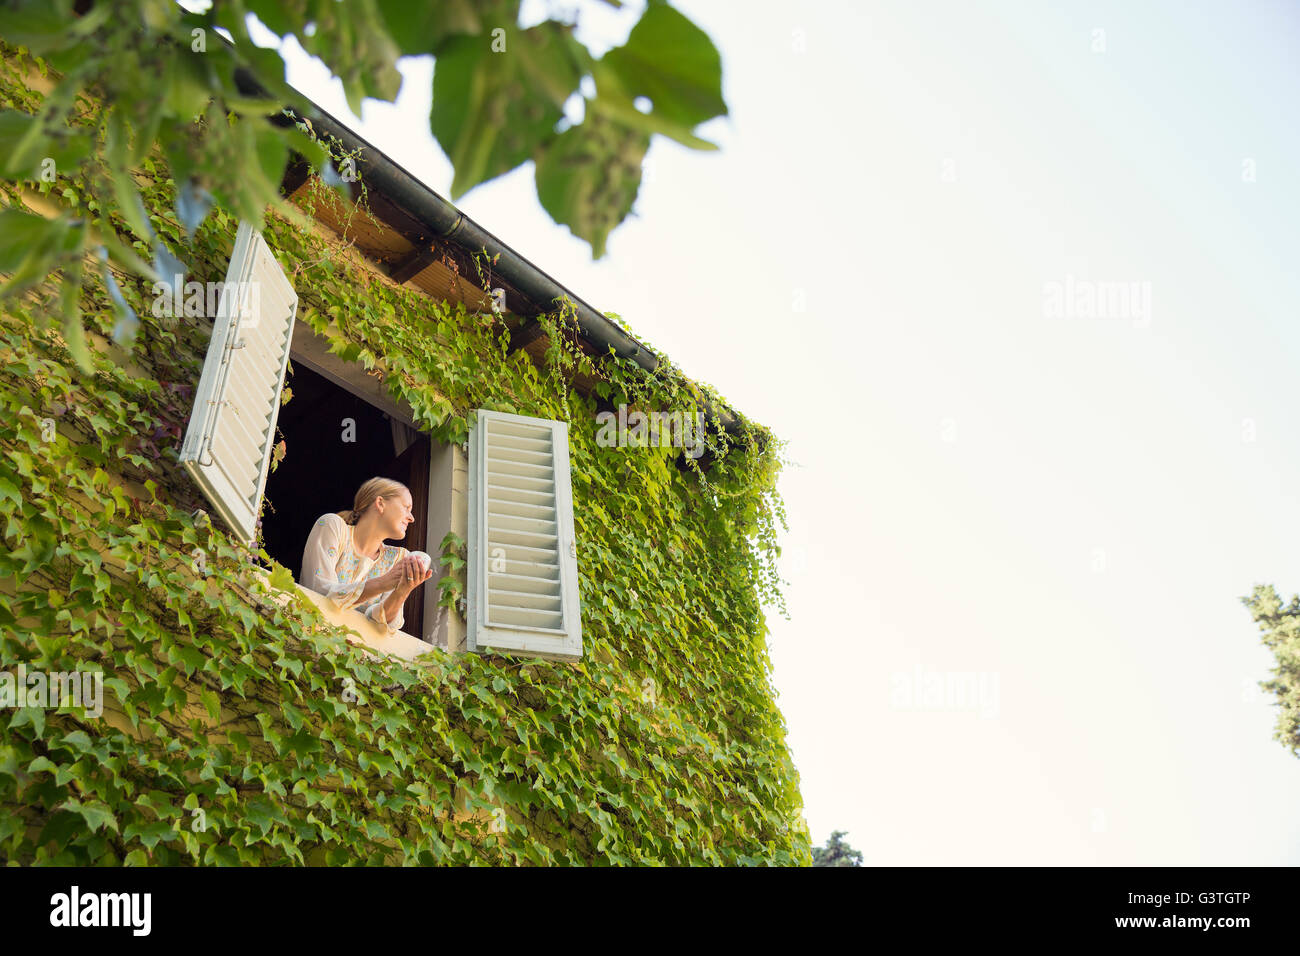 Italy, Tuscany, Dicomano, Woman looking out from window of overgrown house - Stock Image